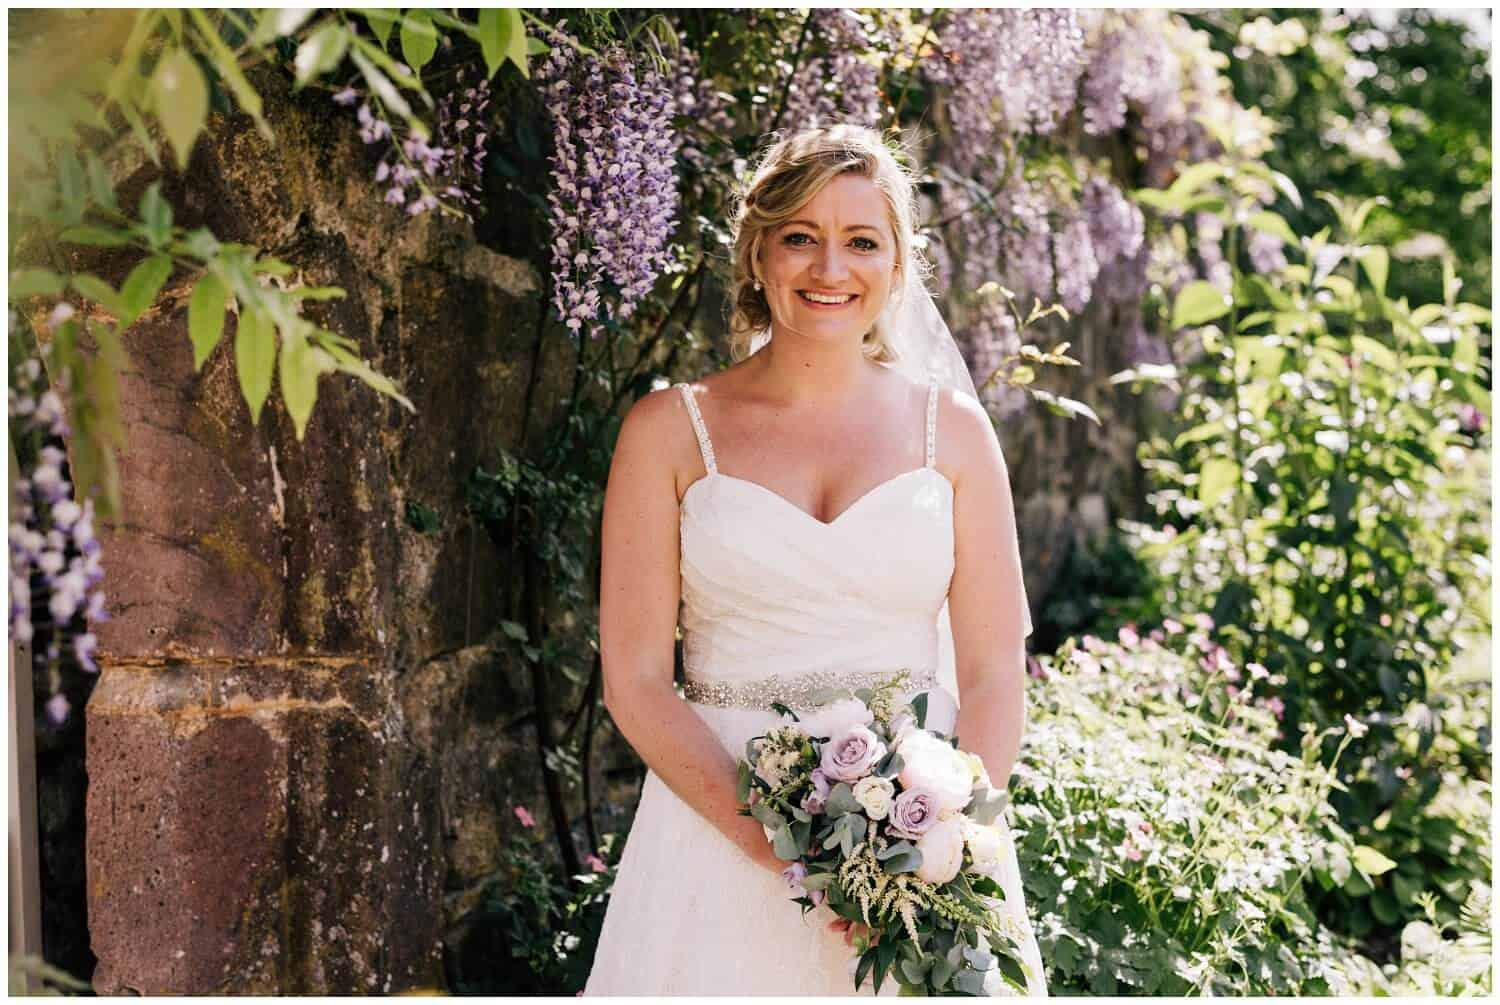 The Great Barn Devon - Wedding of Fran & Josh - Images by Lucy Shergold